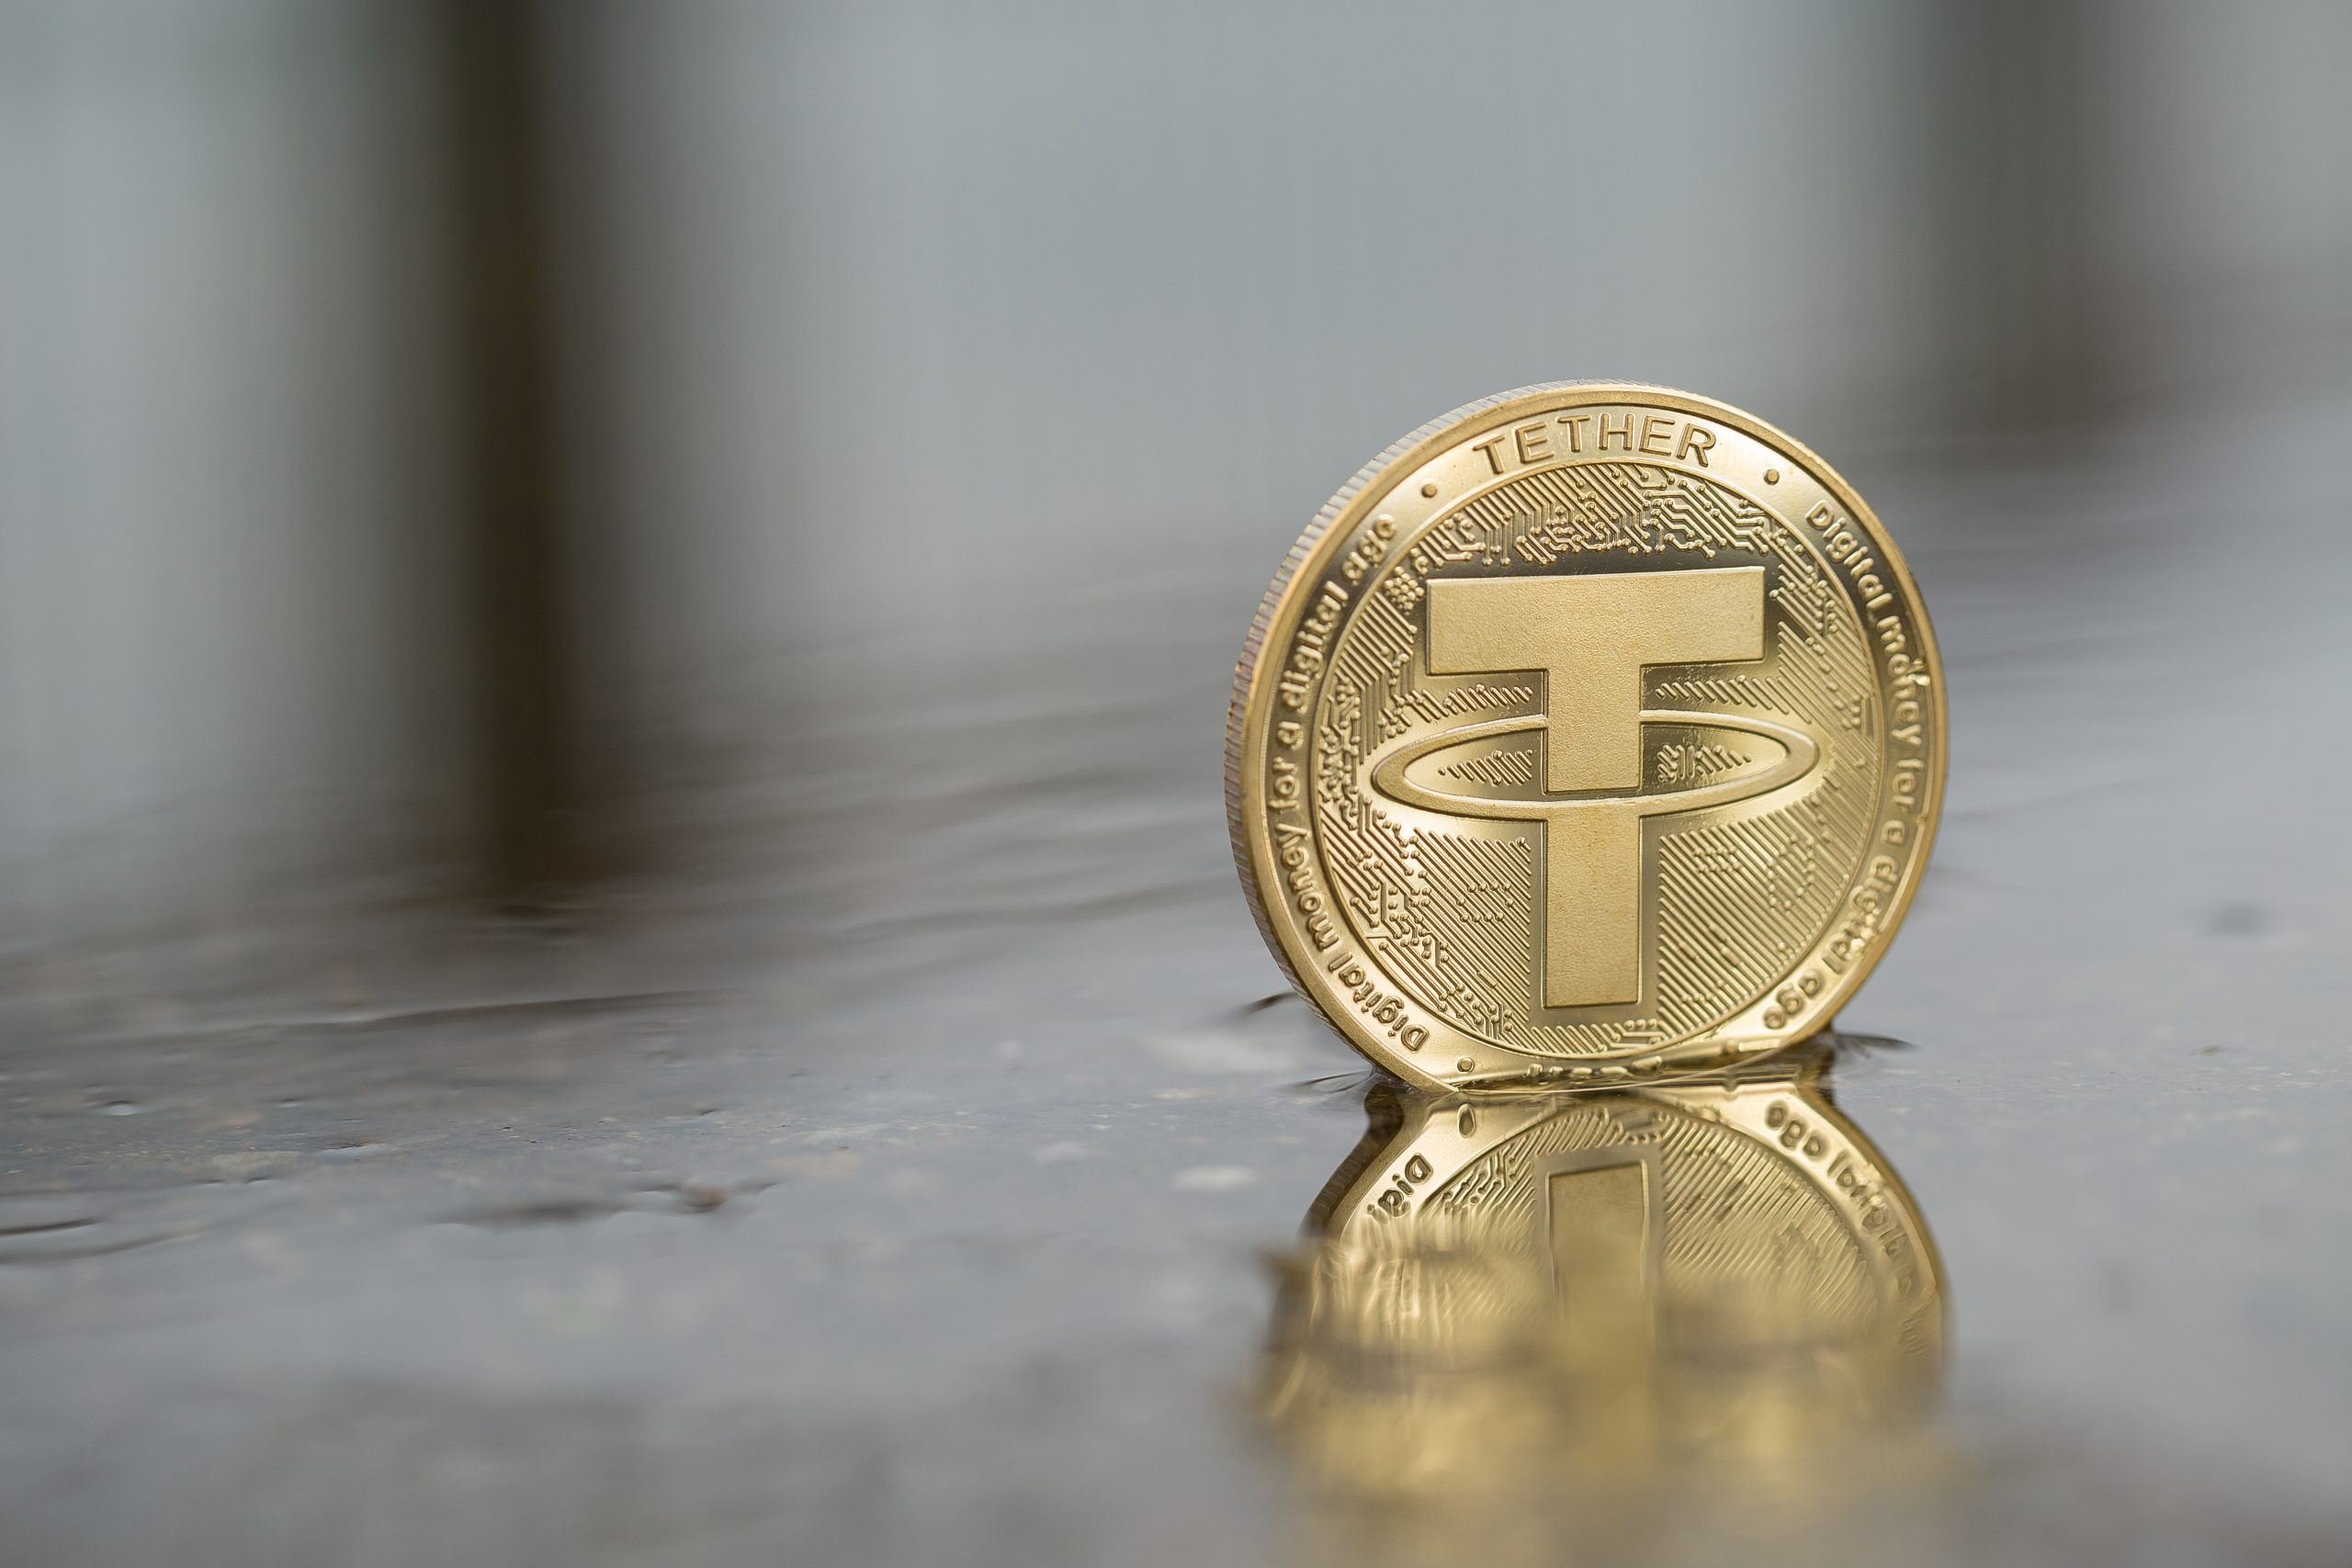 Is Tether Correct a Rip-off to Enrich Bitcoin Merchants?